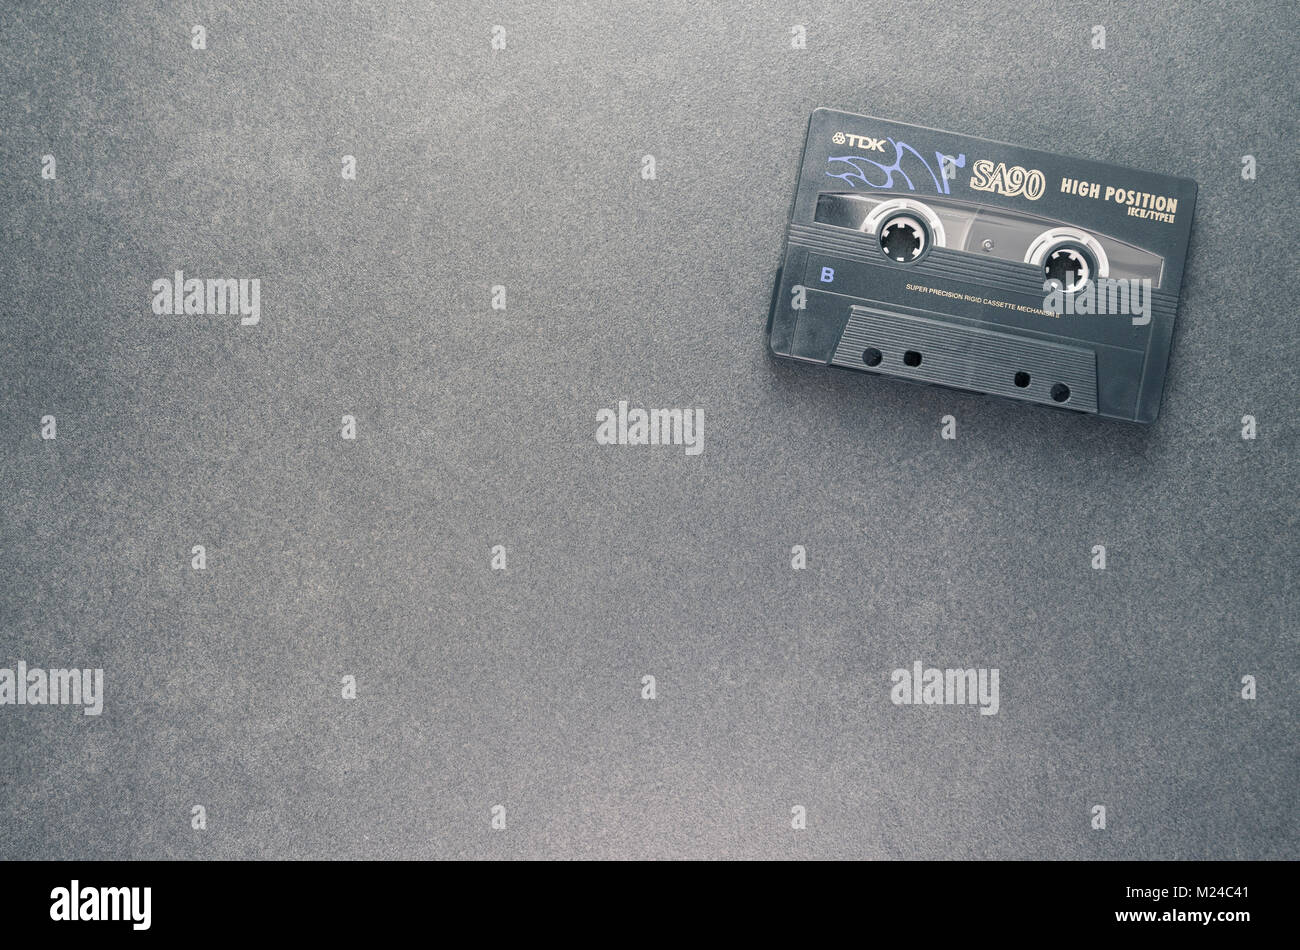 compact magnetic tape analog audio recording cassette - directly above view - Stock Image